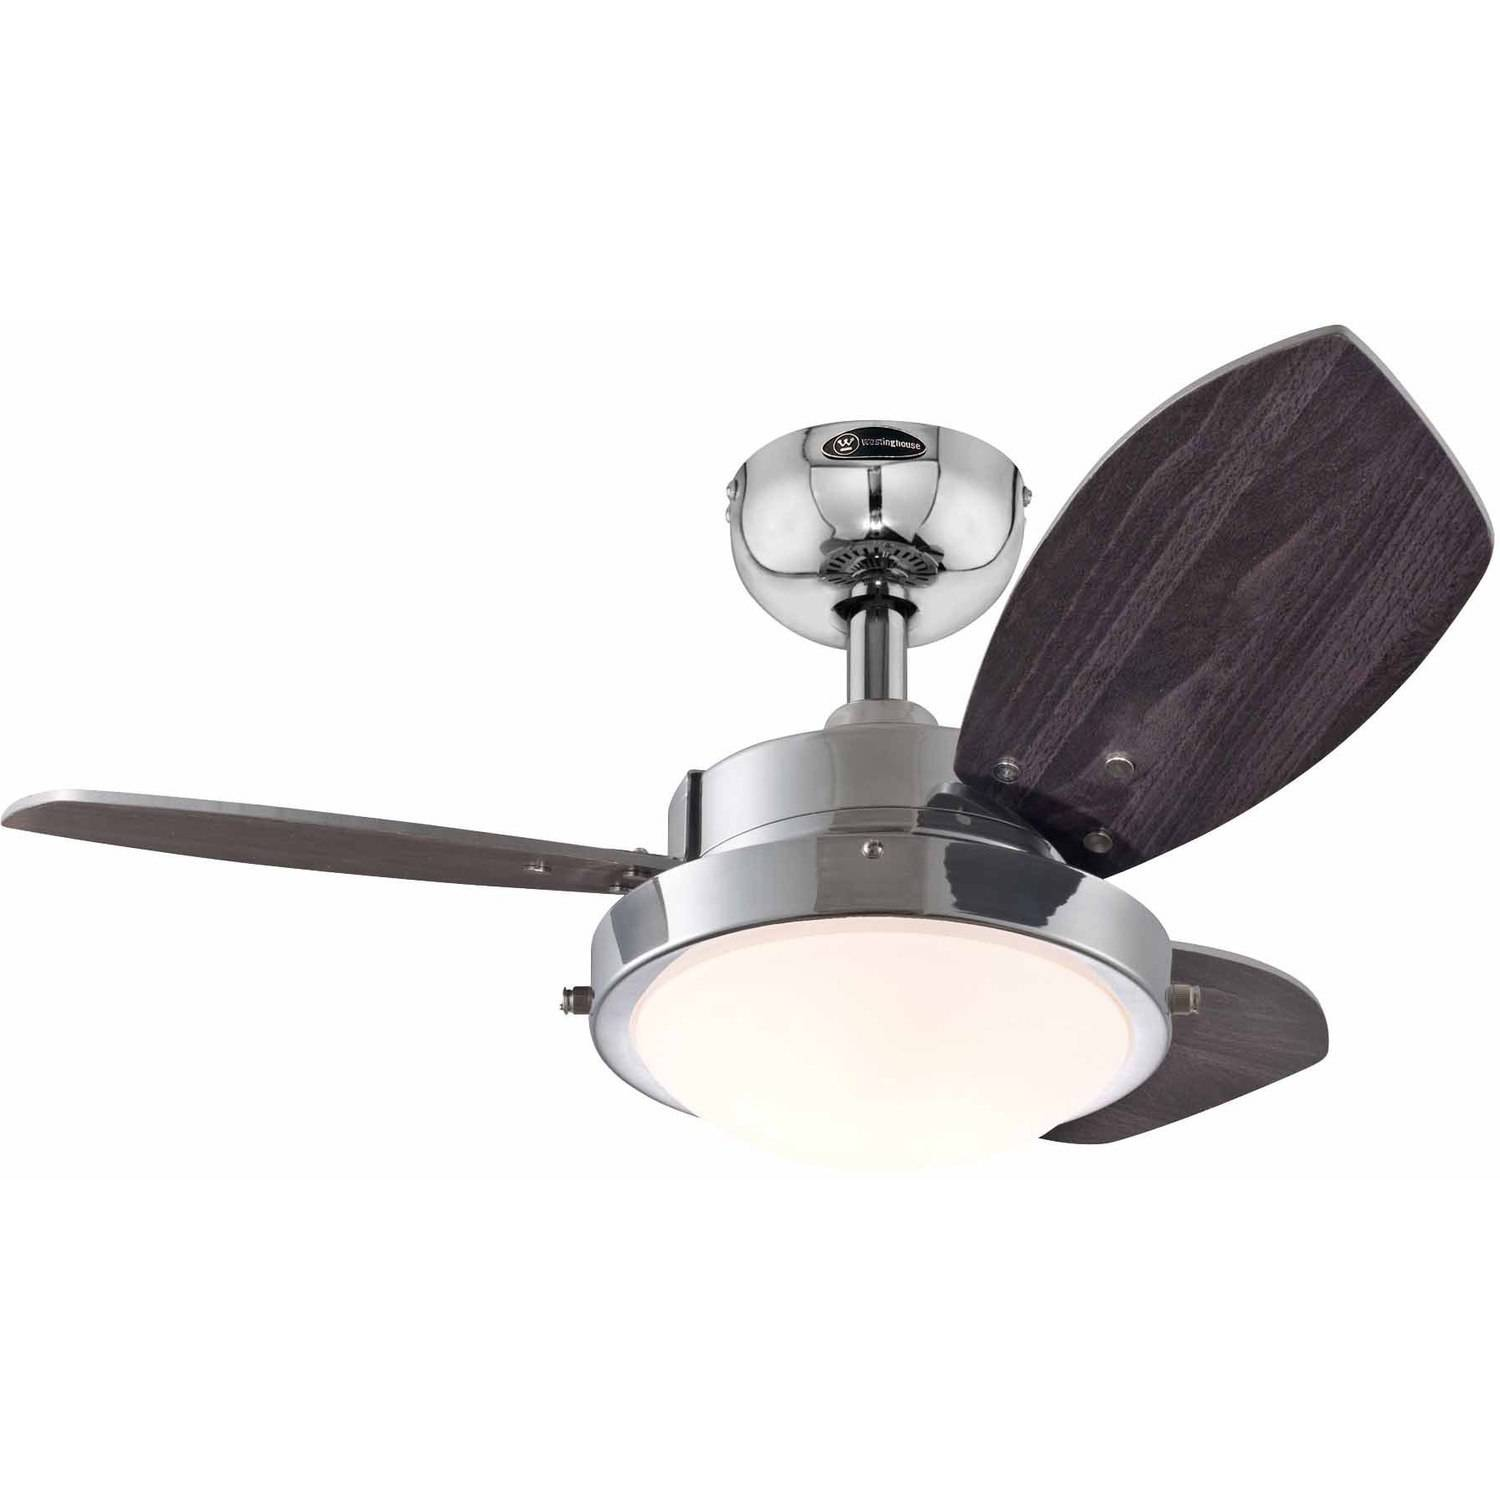 westinghouse   chrome blade reversible ceiling fan  - westinghouse   chrome blade reversible ceiling fan with light walmartcom